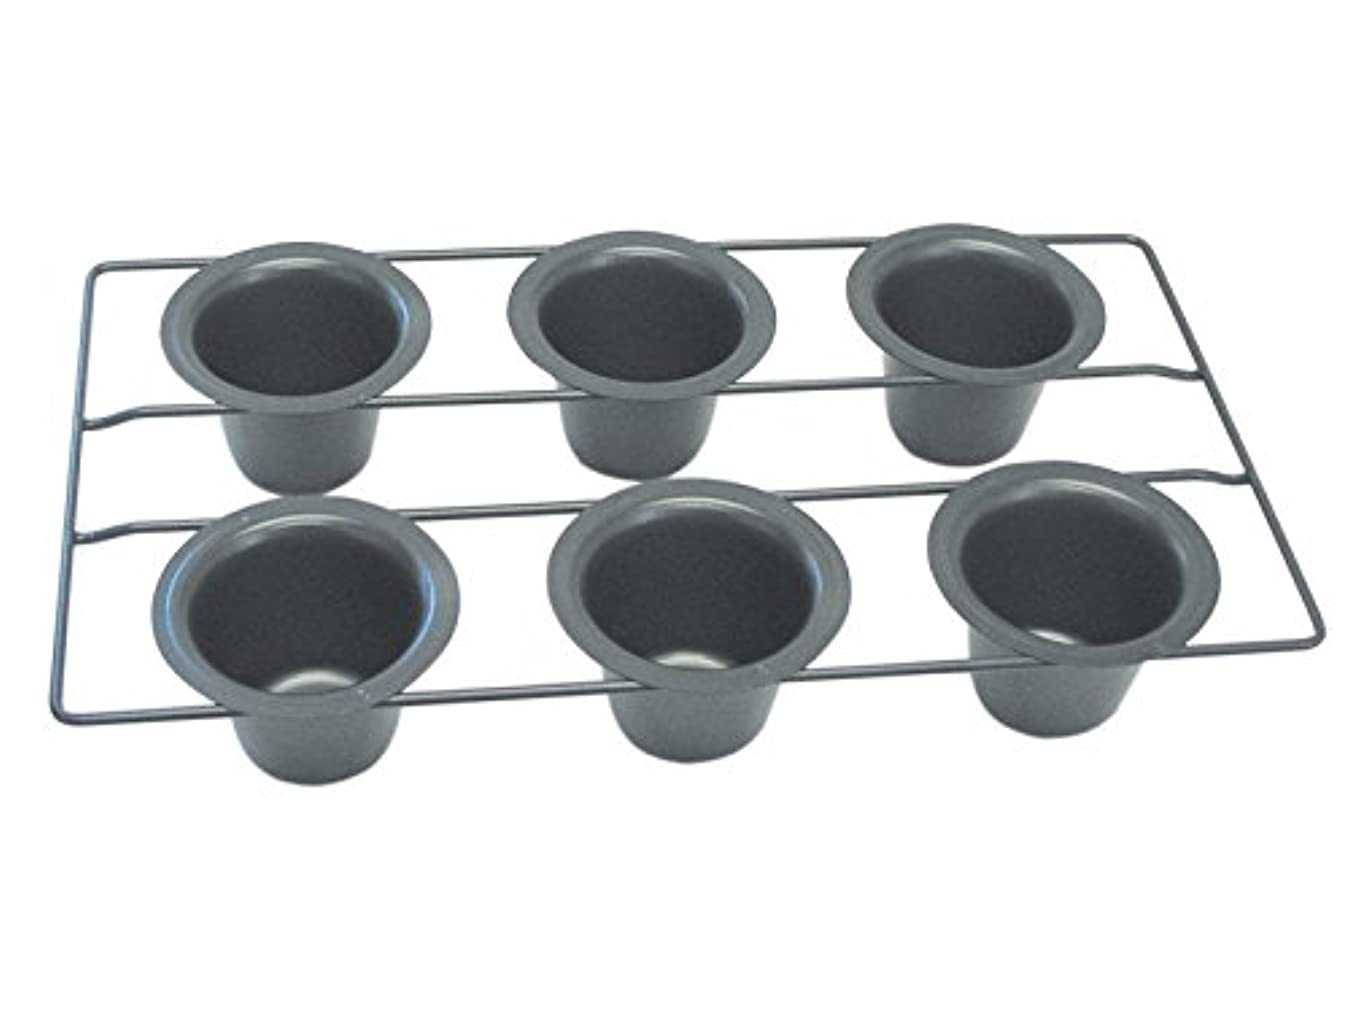 R&M International 2391 Non-Stick 6-Cup Popover Pan